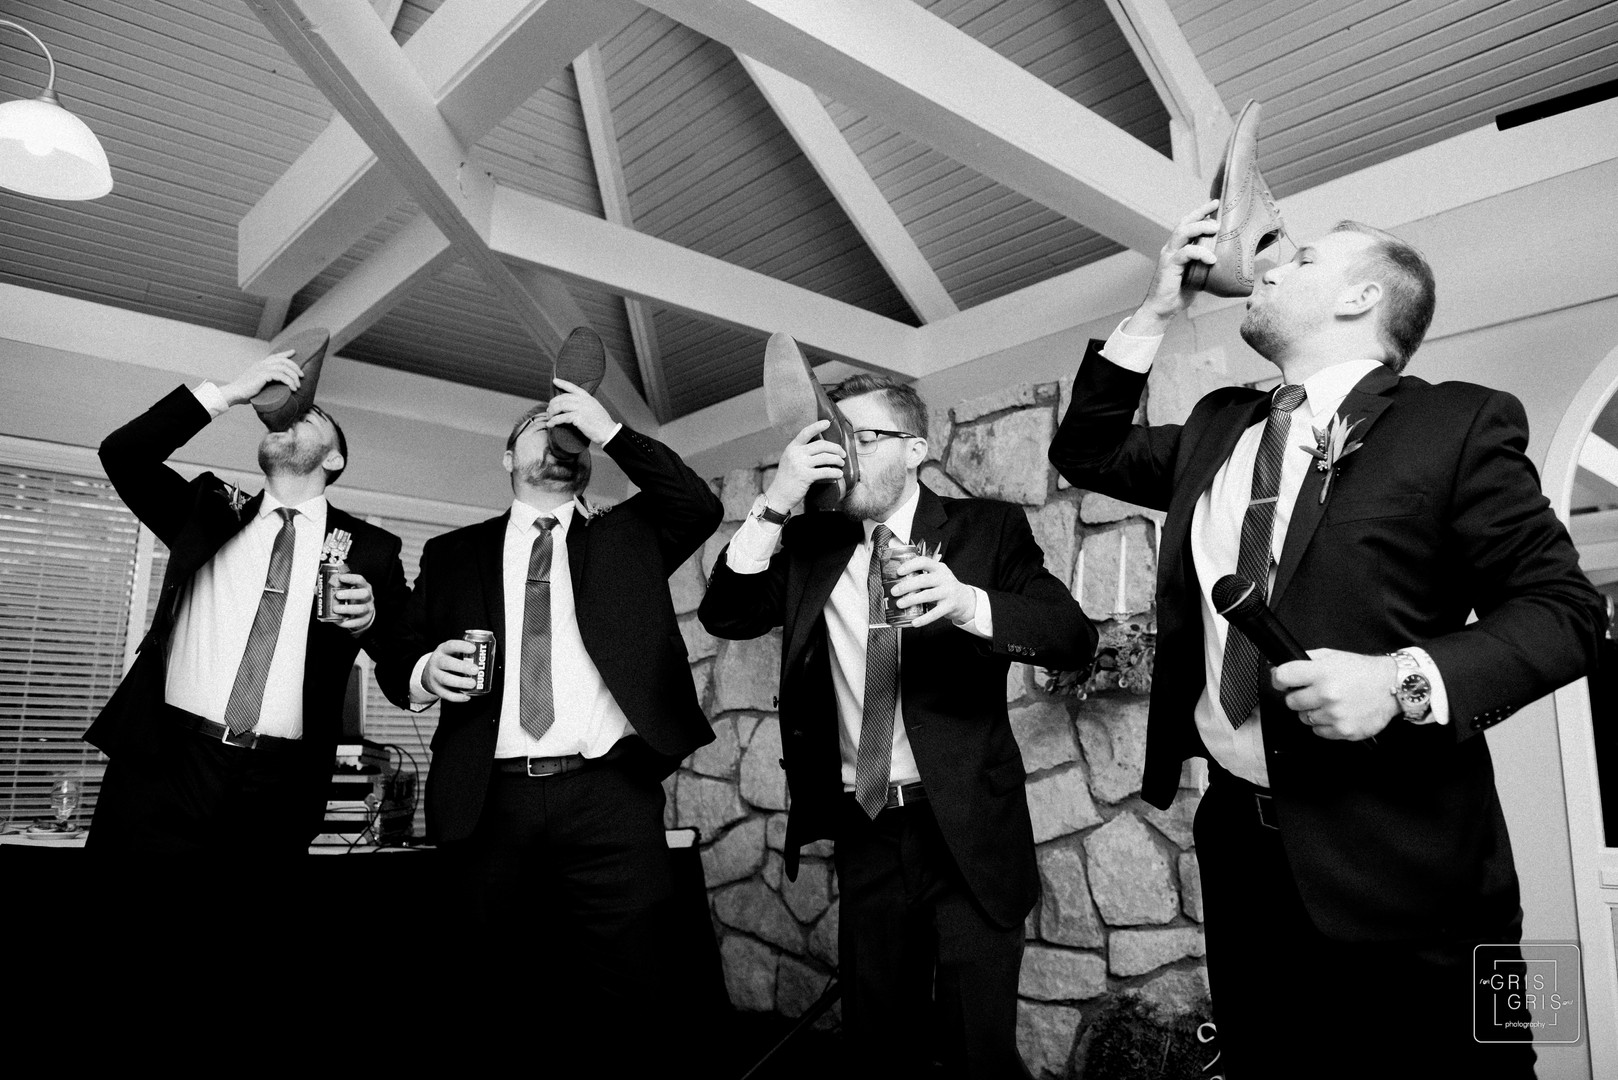 groomsmen toast by drinking beer out of shooes after best man speech durring wedding reception